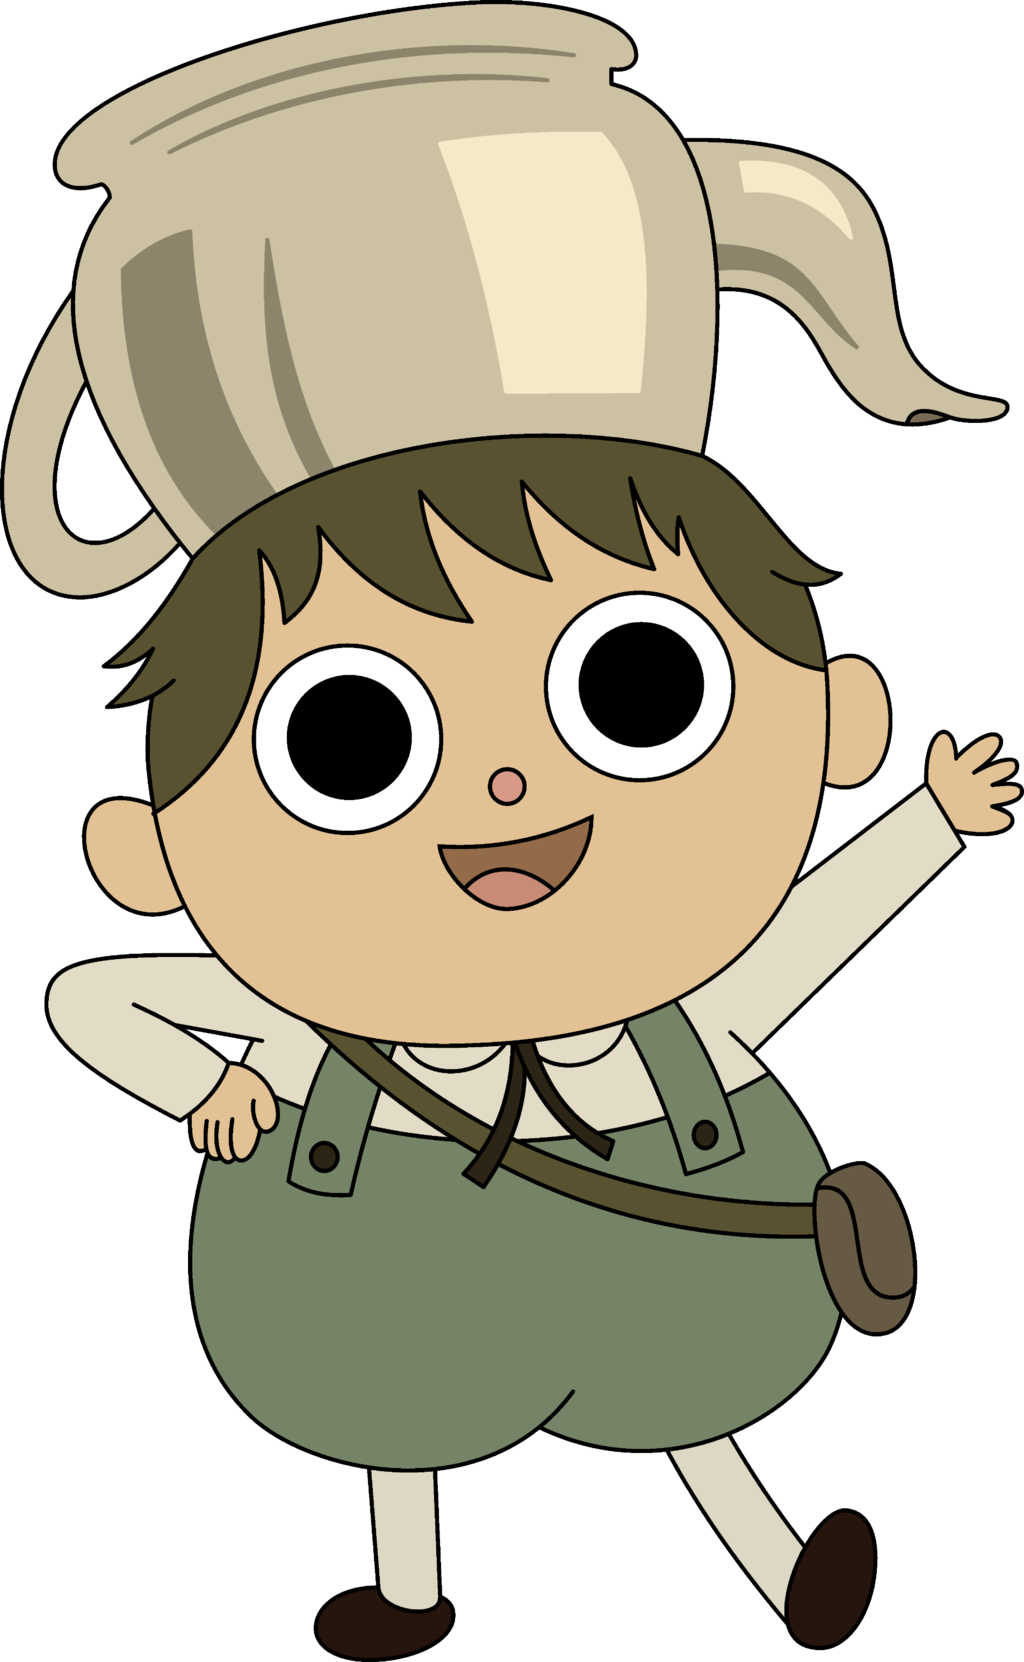 Over the garden wall png. Image actual character gregory